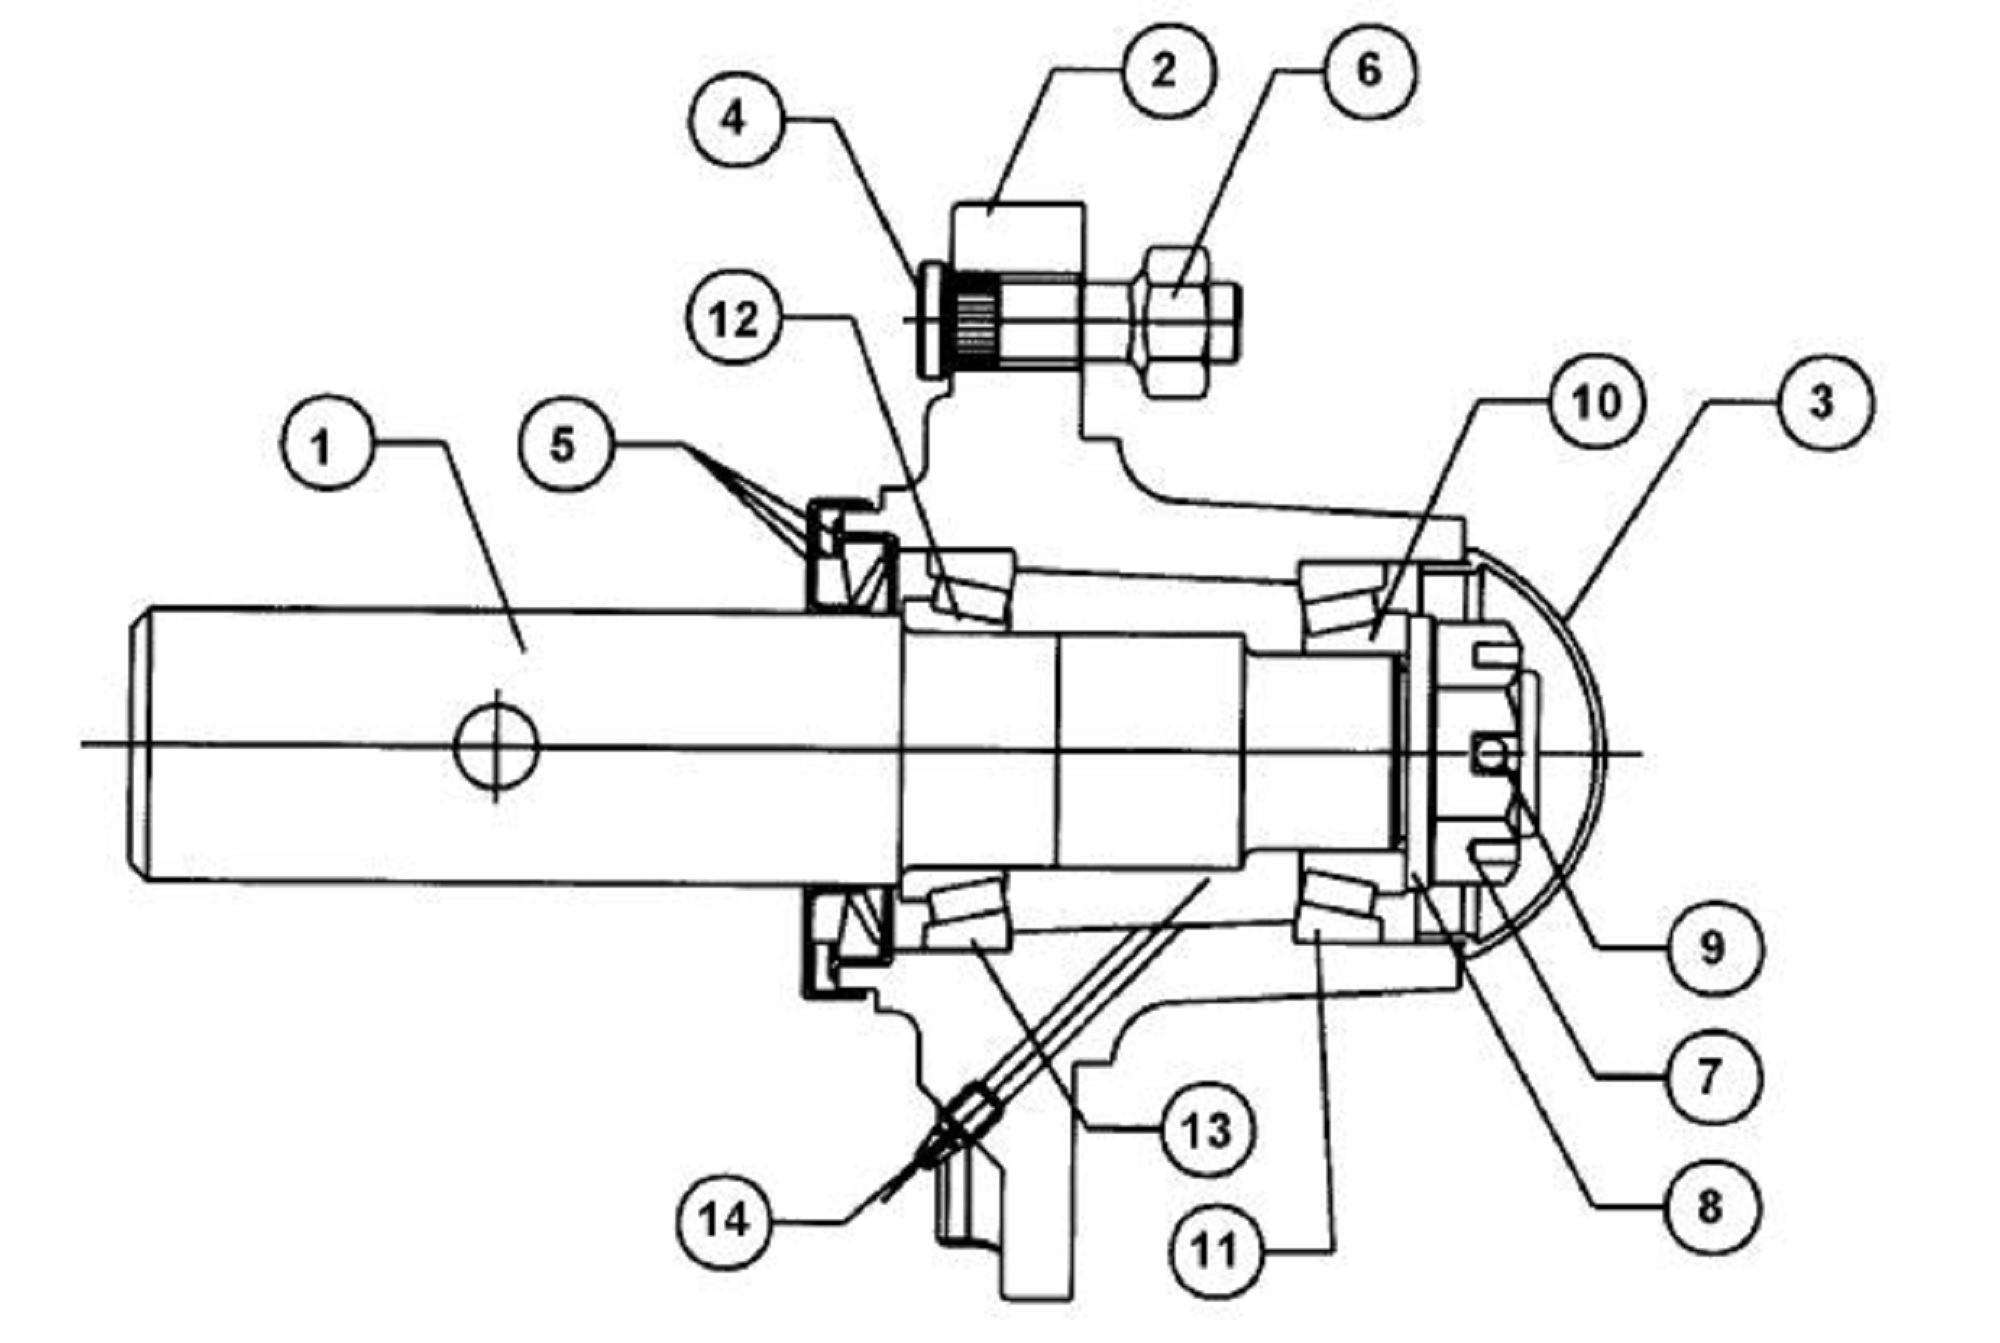 Servis Rhino Turbo 120 Sn10200 Current Rotary Cutter Hub Assembly Diagram Hover Over Image For Expanded View